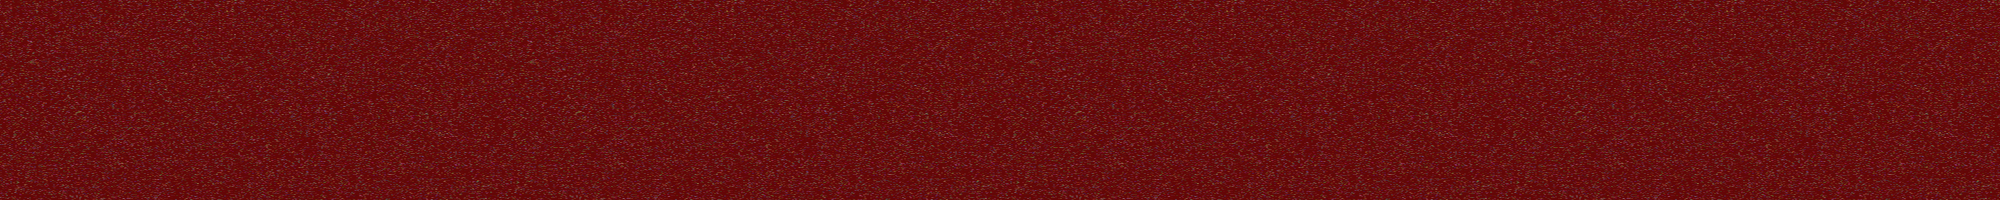 white noise on dark red